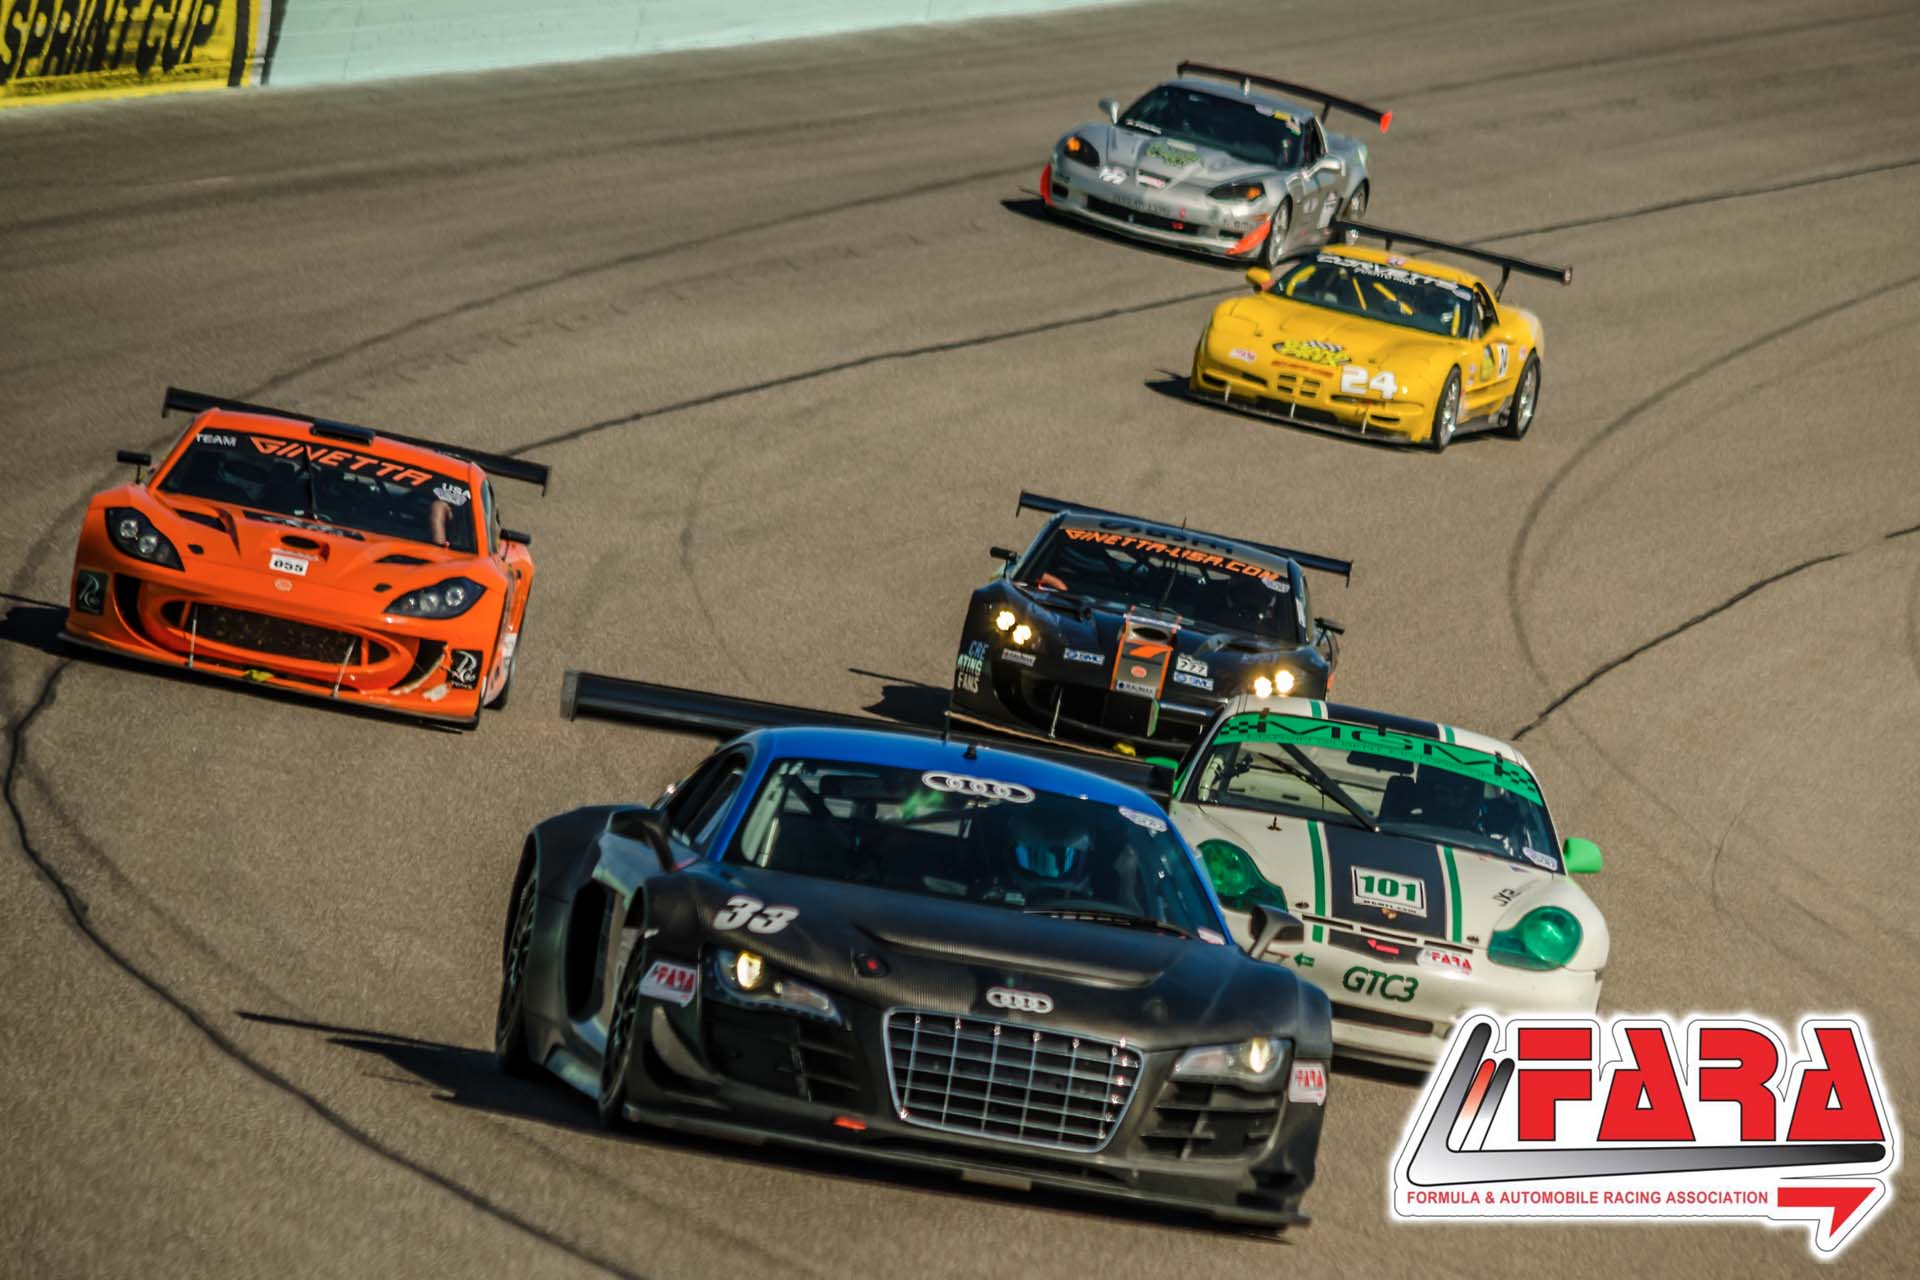 ANSA MOTORSPORTS DRIVERS HAVE PODIUM AMBITIONS AT HOMESTEAD 500